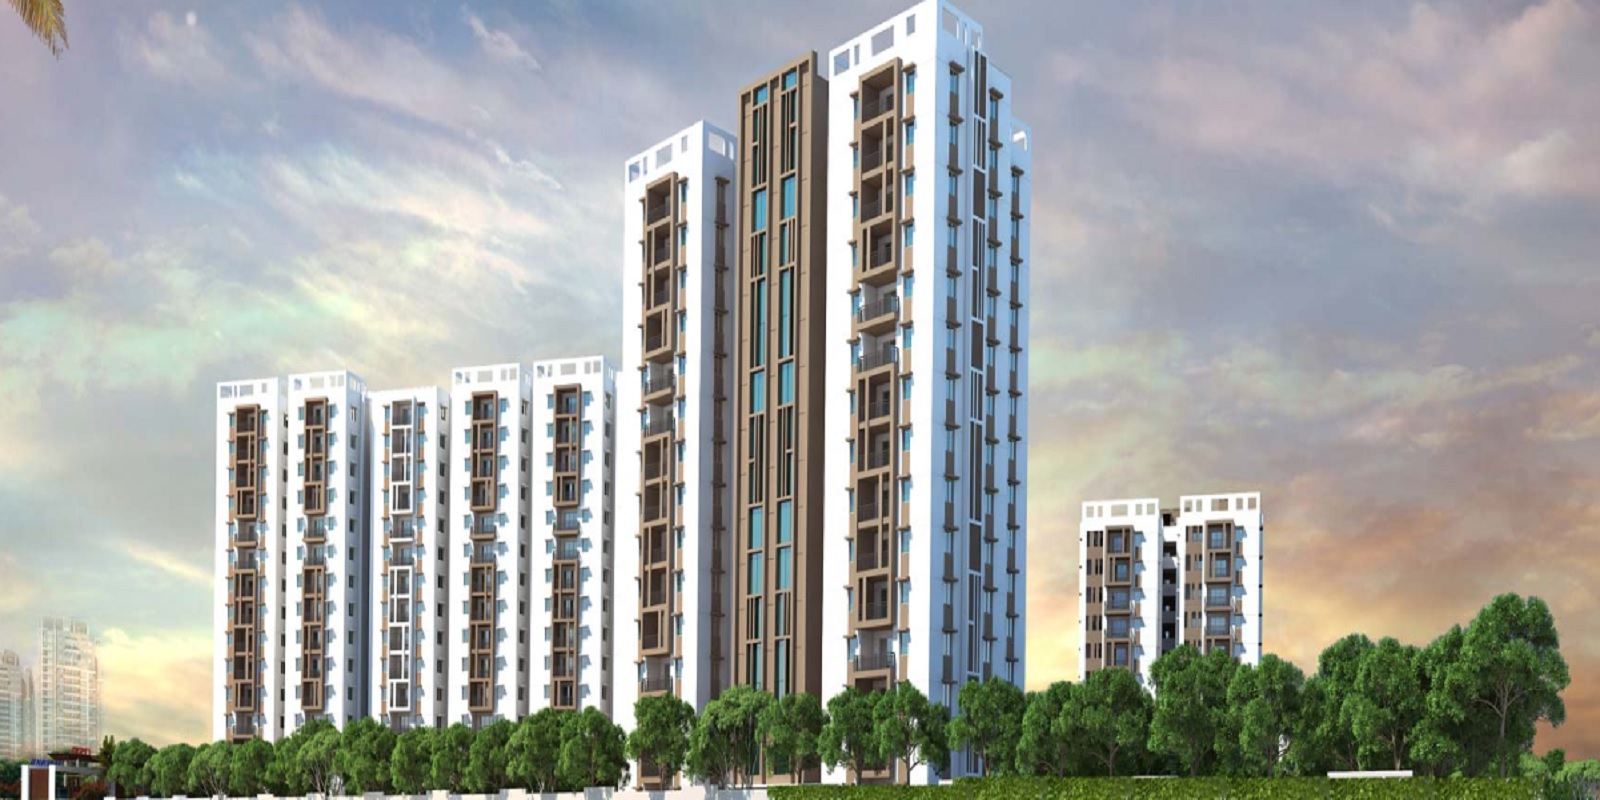 dsr parkway phase i project large image2